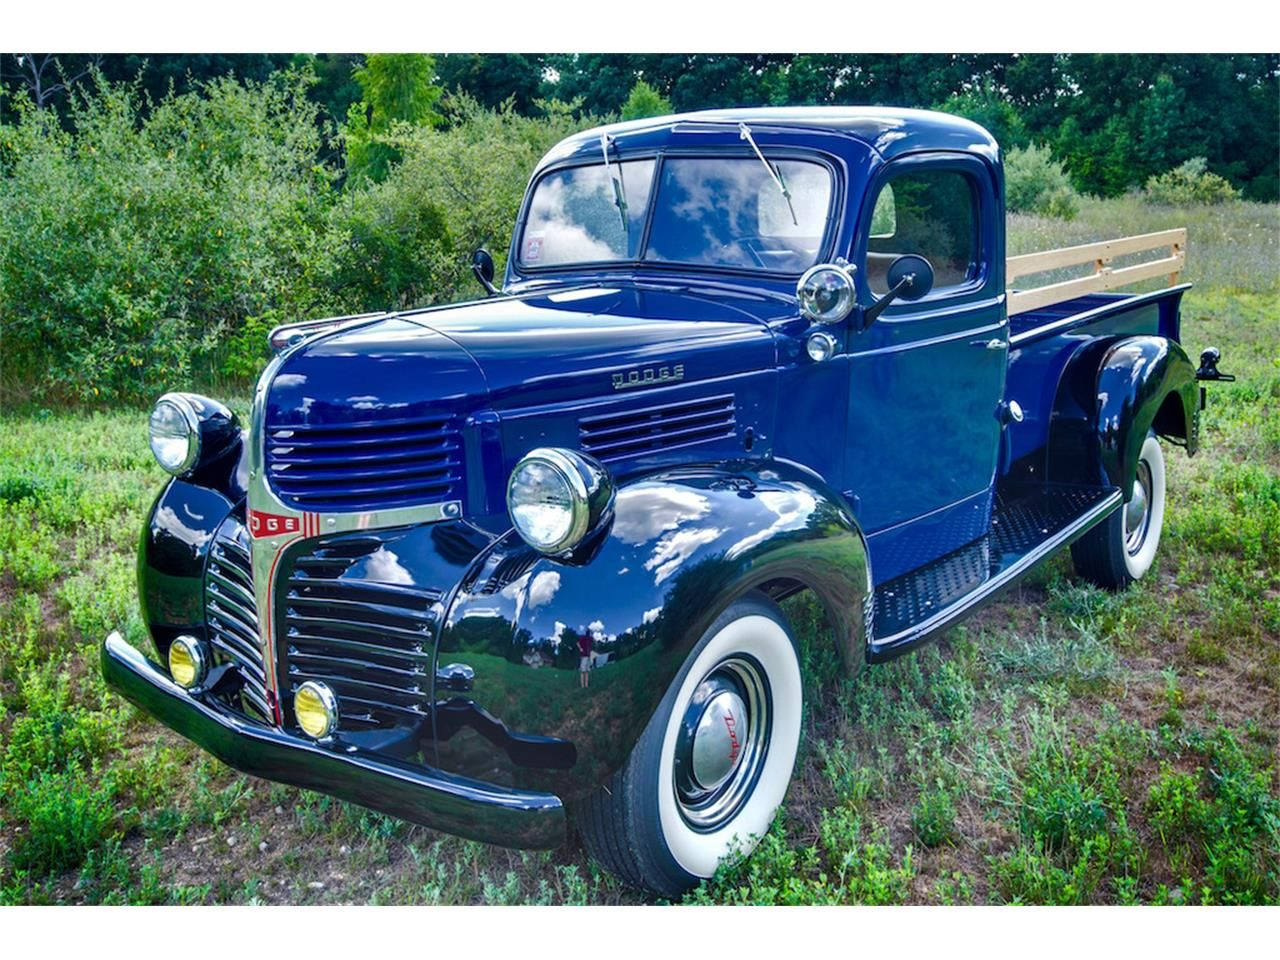 1947 dodge pickup cool classic cars pinterest dodge pickup dodge trucks. Black Bedroom Furniture Sets. Home Design Ideas